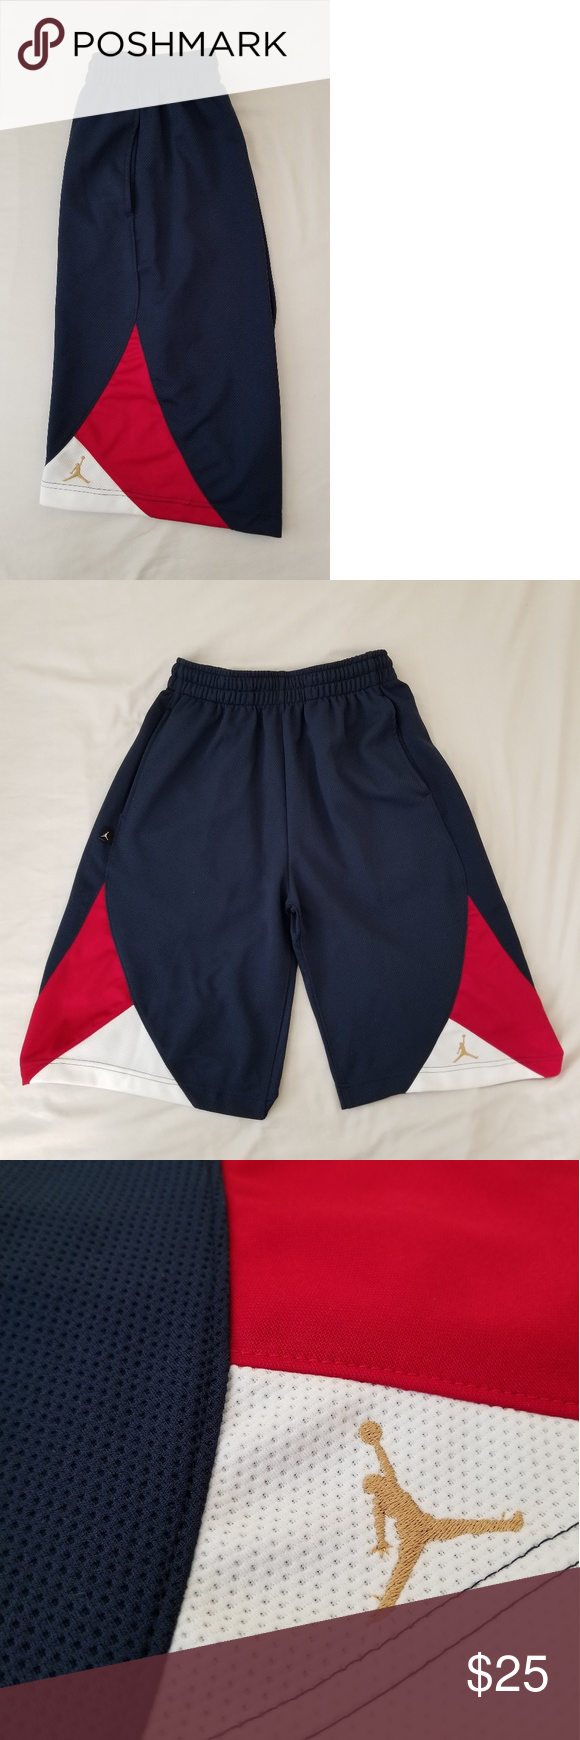 c2edb4dc2a190e Jordan Olympic bball shorts sz S Excellent condition. 9.5 10. Navy  blue red white   gold jumpman. Size is small but will fit medium. Has  pockets.